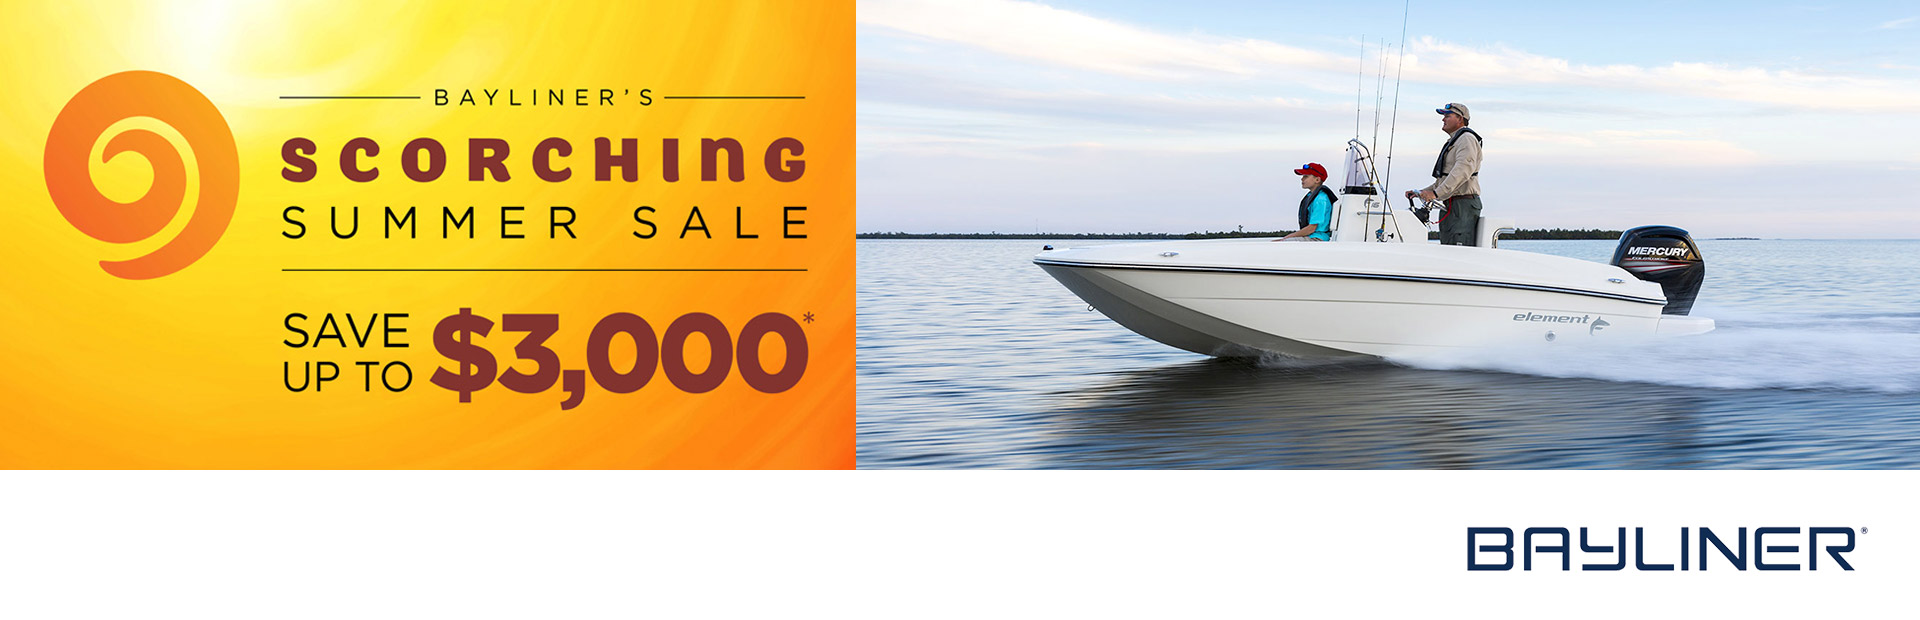 Bayliner's Scorching Summer Sale